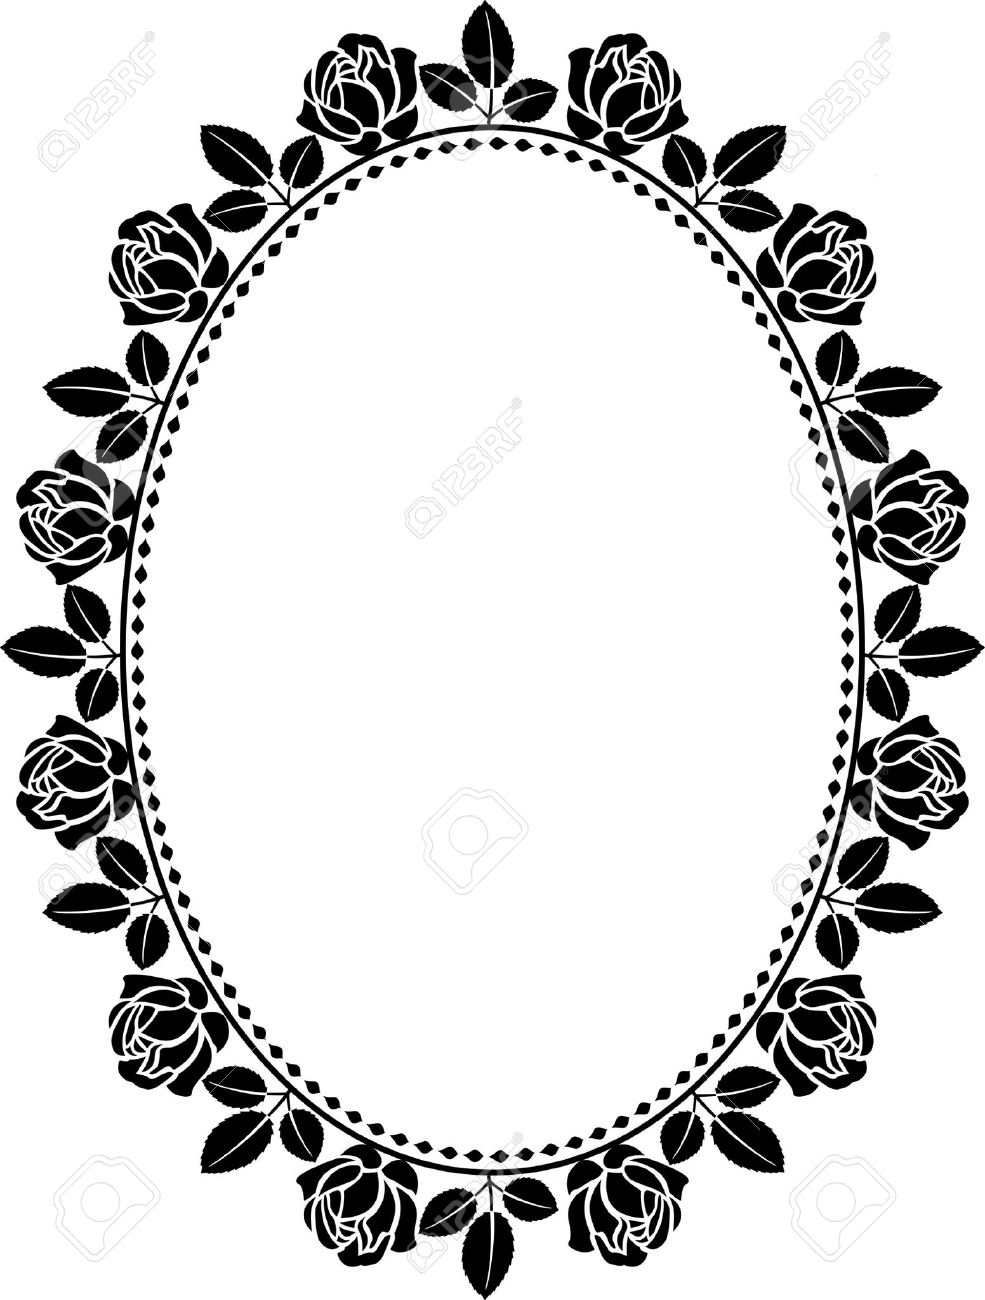 Oval Outline Border Clipart 20 Free Cliparts Download